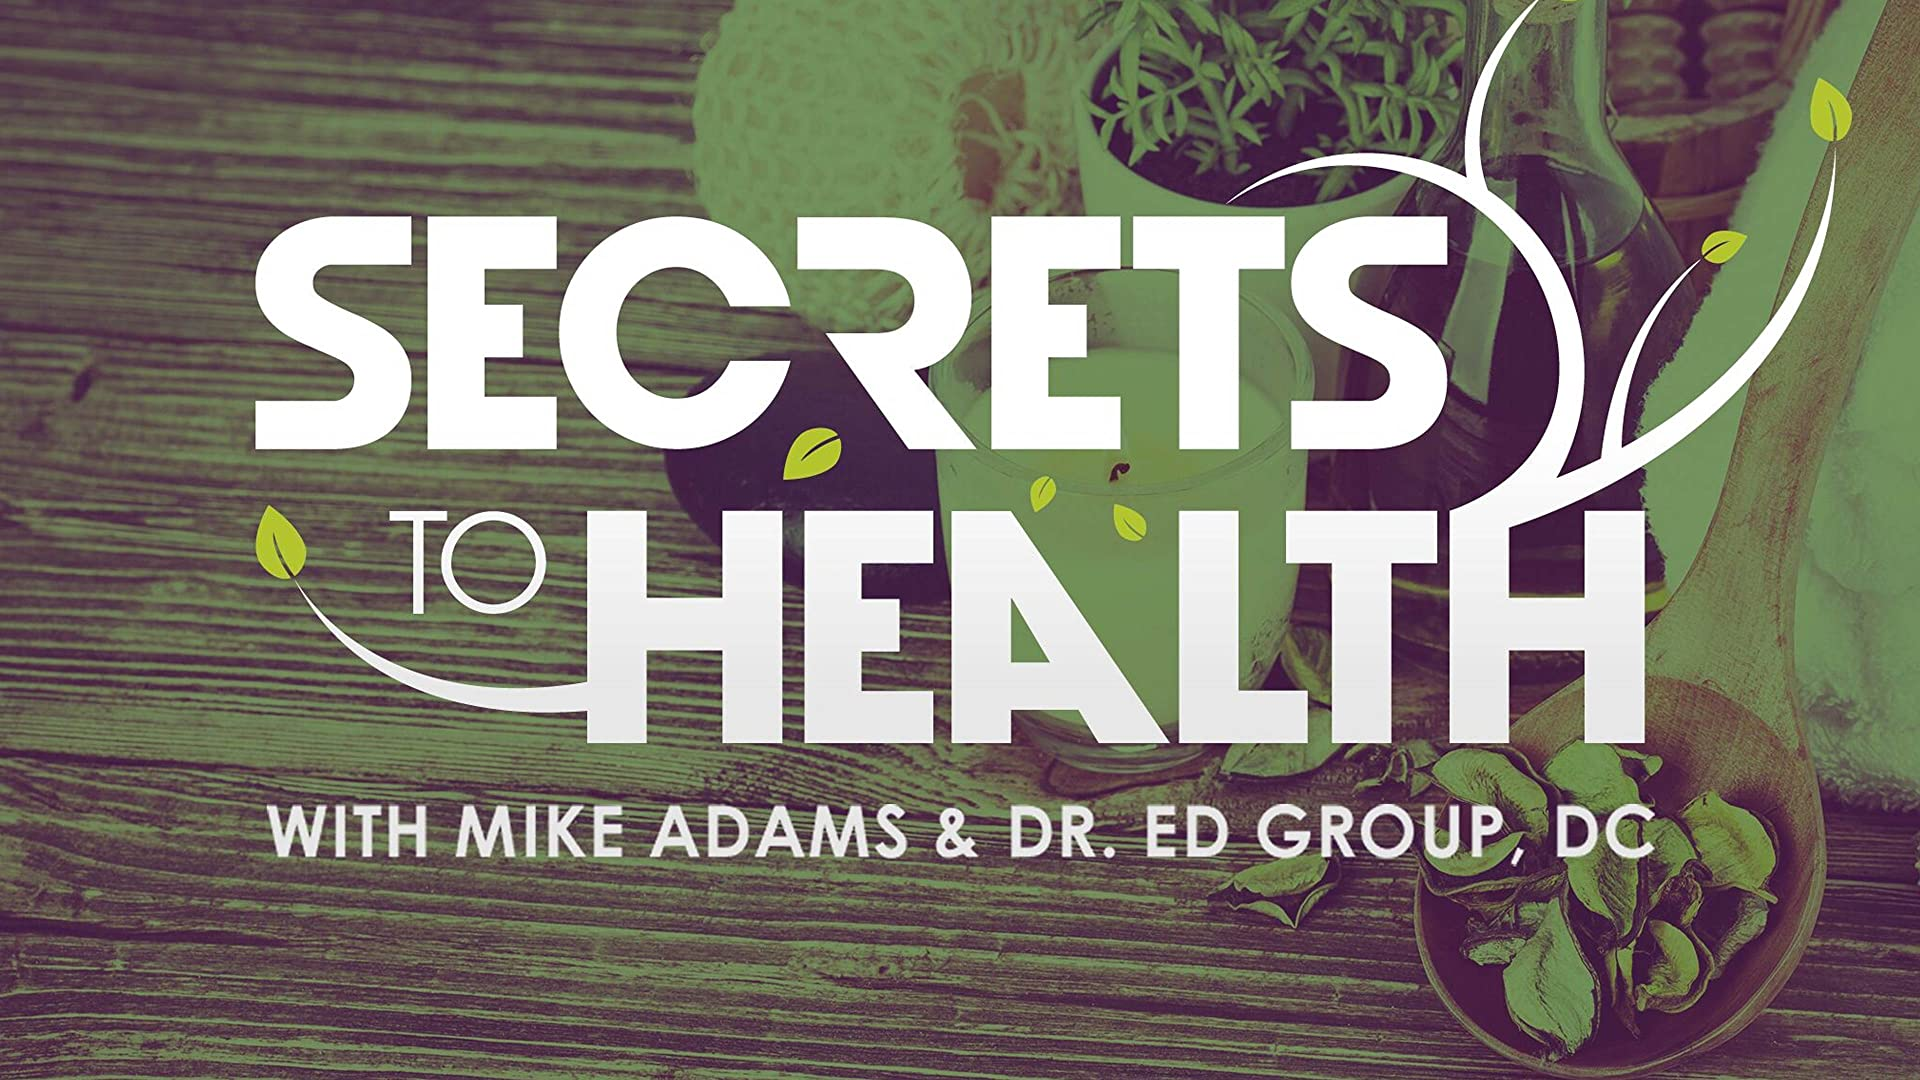 Secrets to Health - Season 1